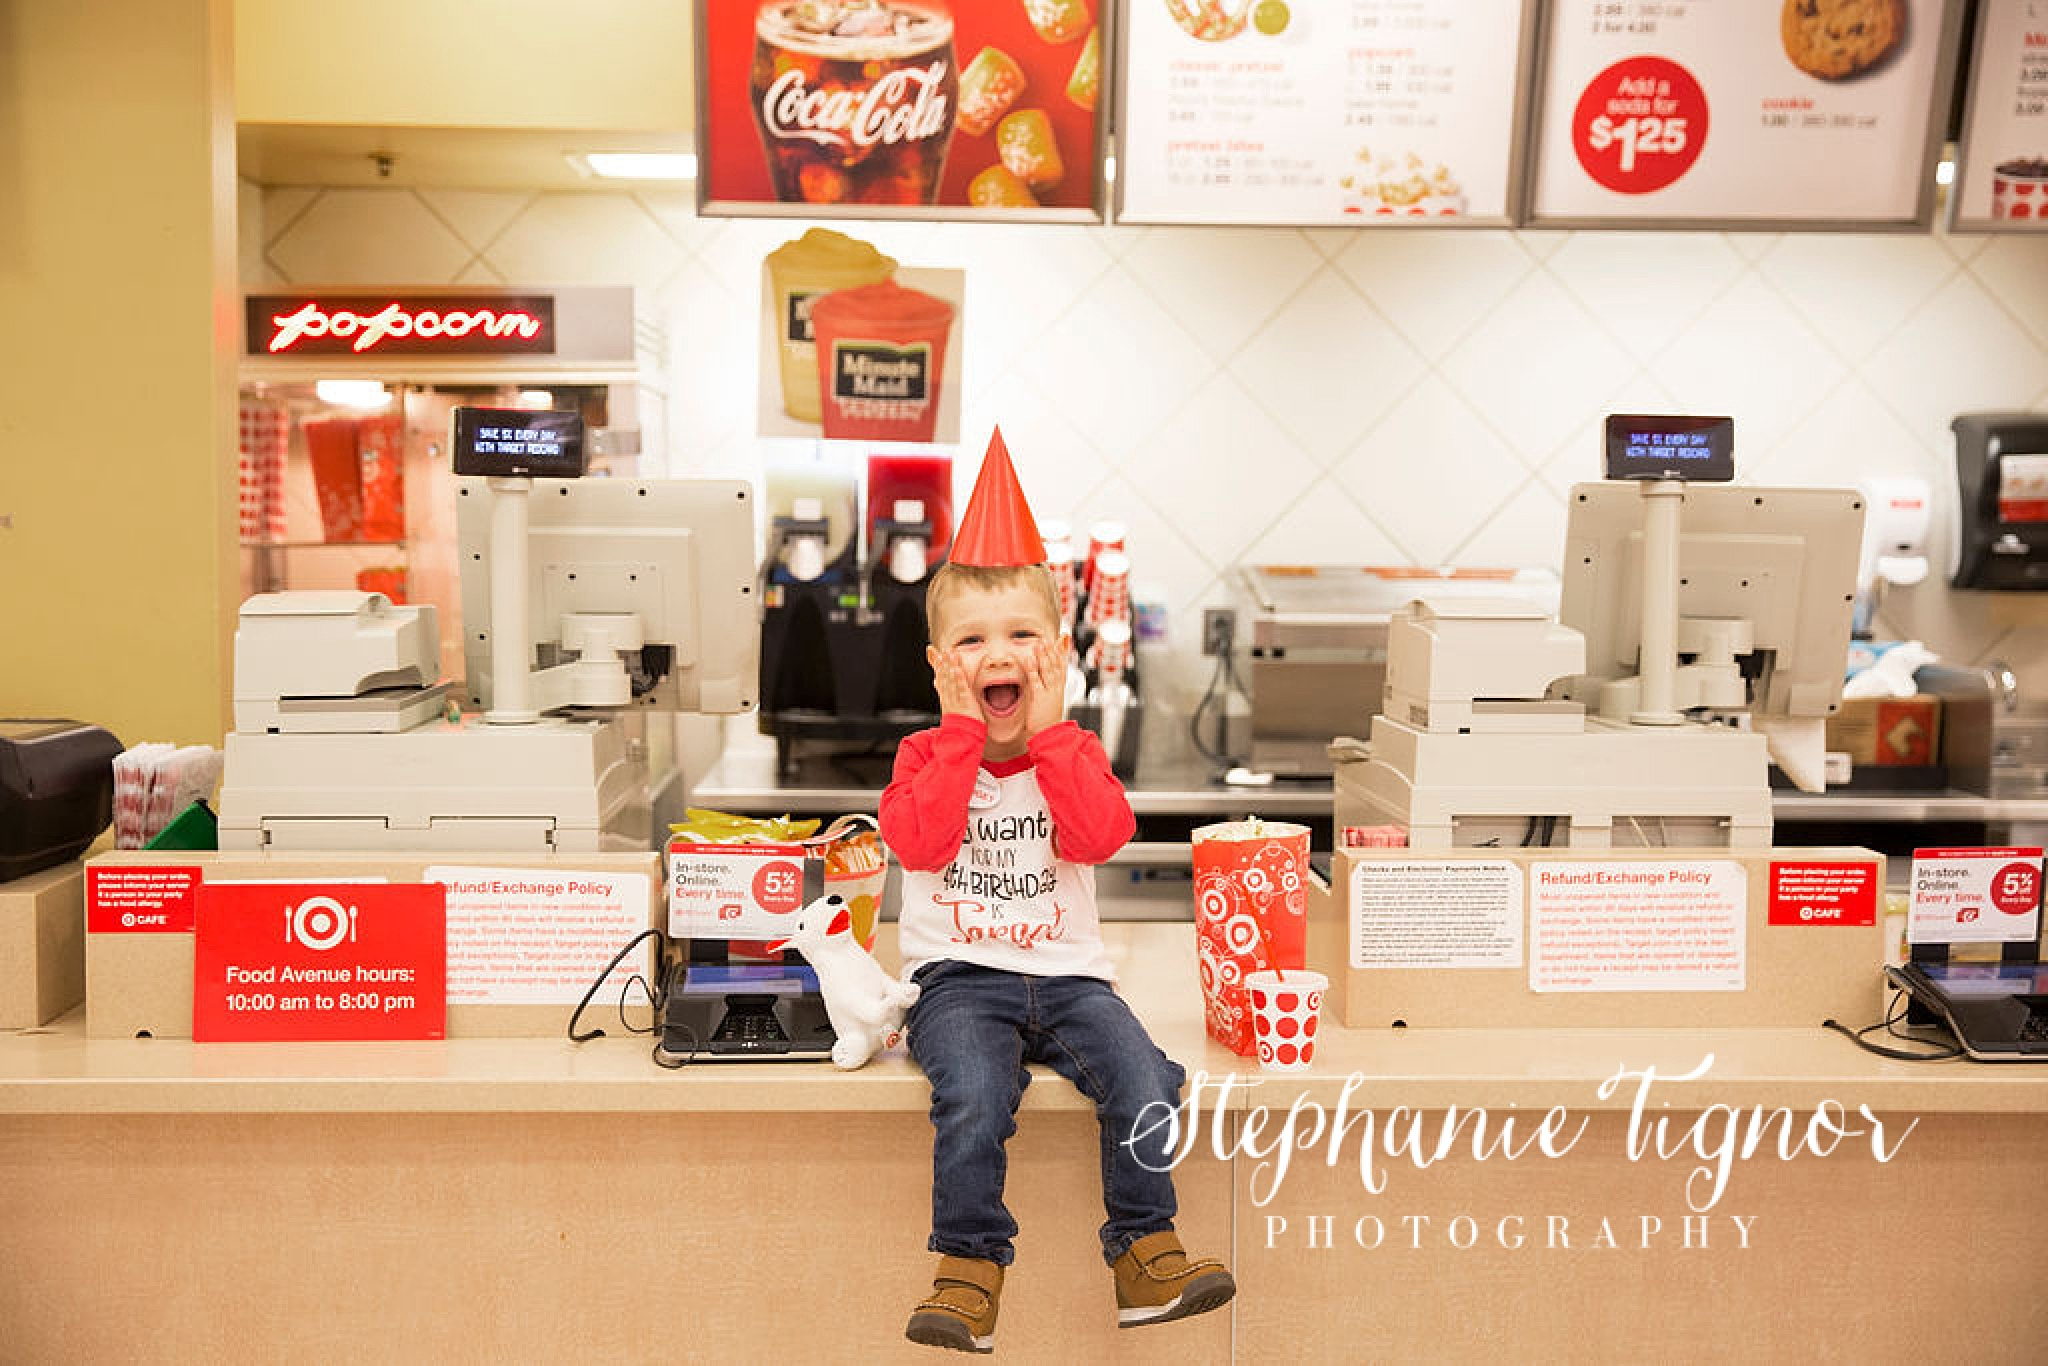 Stephanie Tignor Photography | Fredericksburg VA Birthday Photographer, 4th Birthday, Prayers for Finn, Target, Target birthday, Target birthday party, Shopping in Target